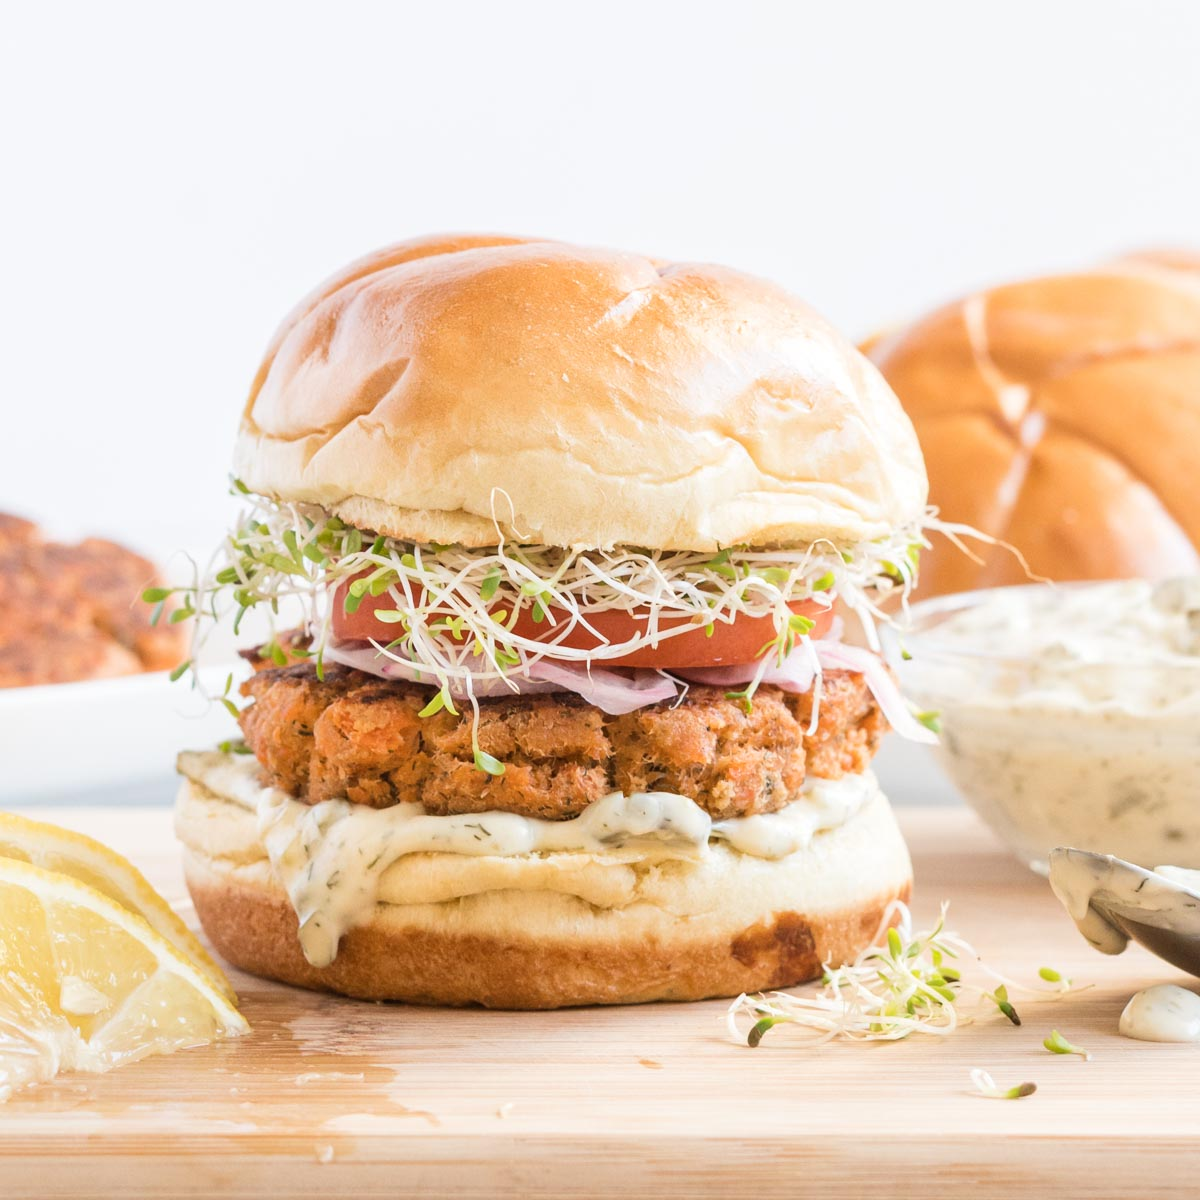 Salmon burger with onion, tomato and sprouts on a wooden board with lemon wedges.